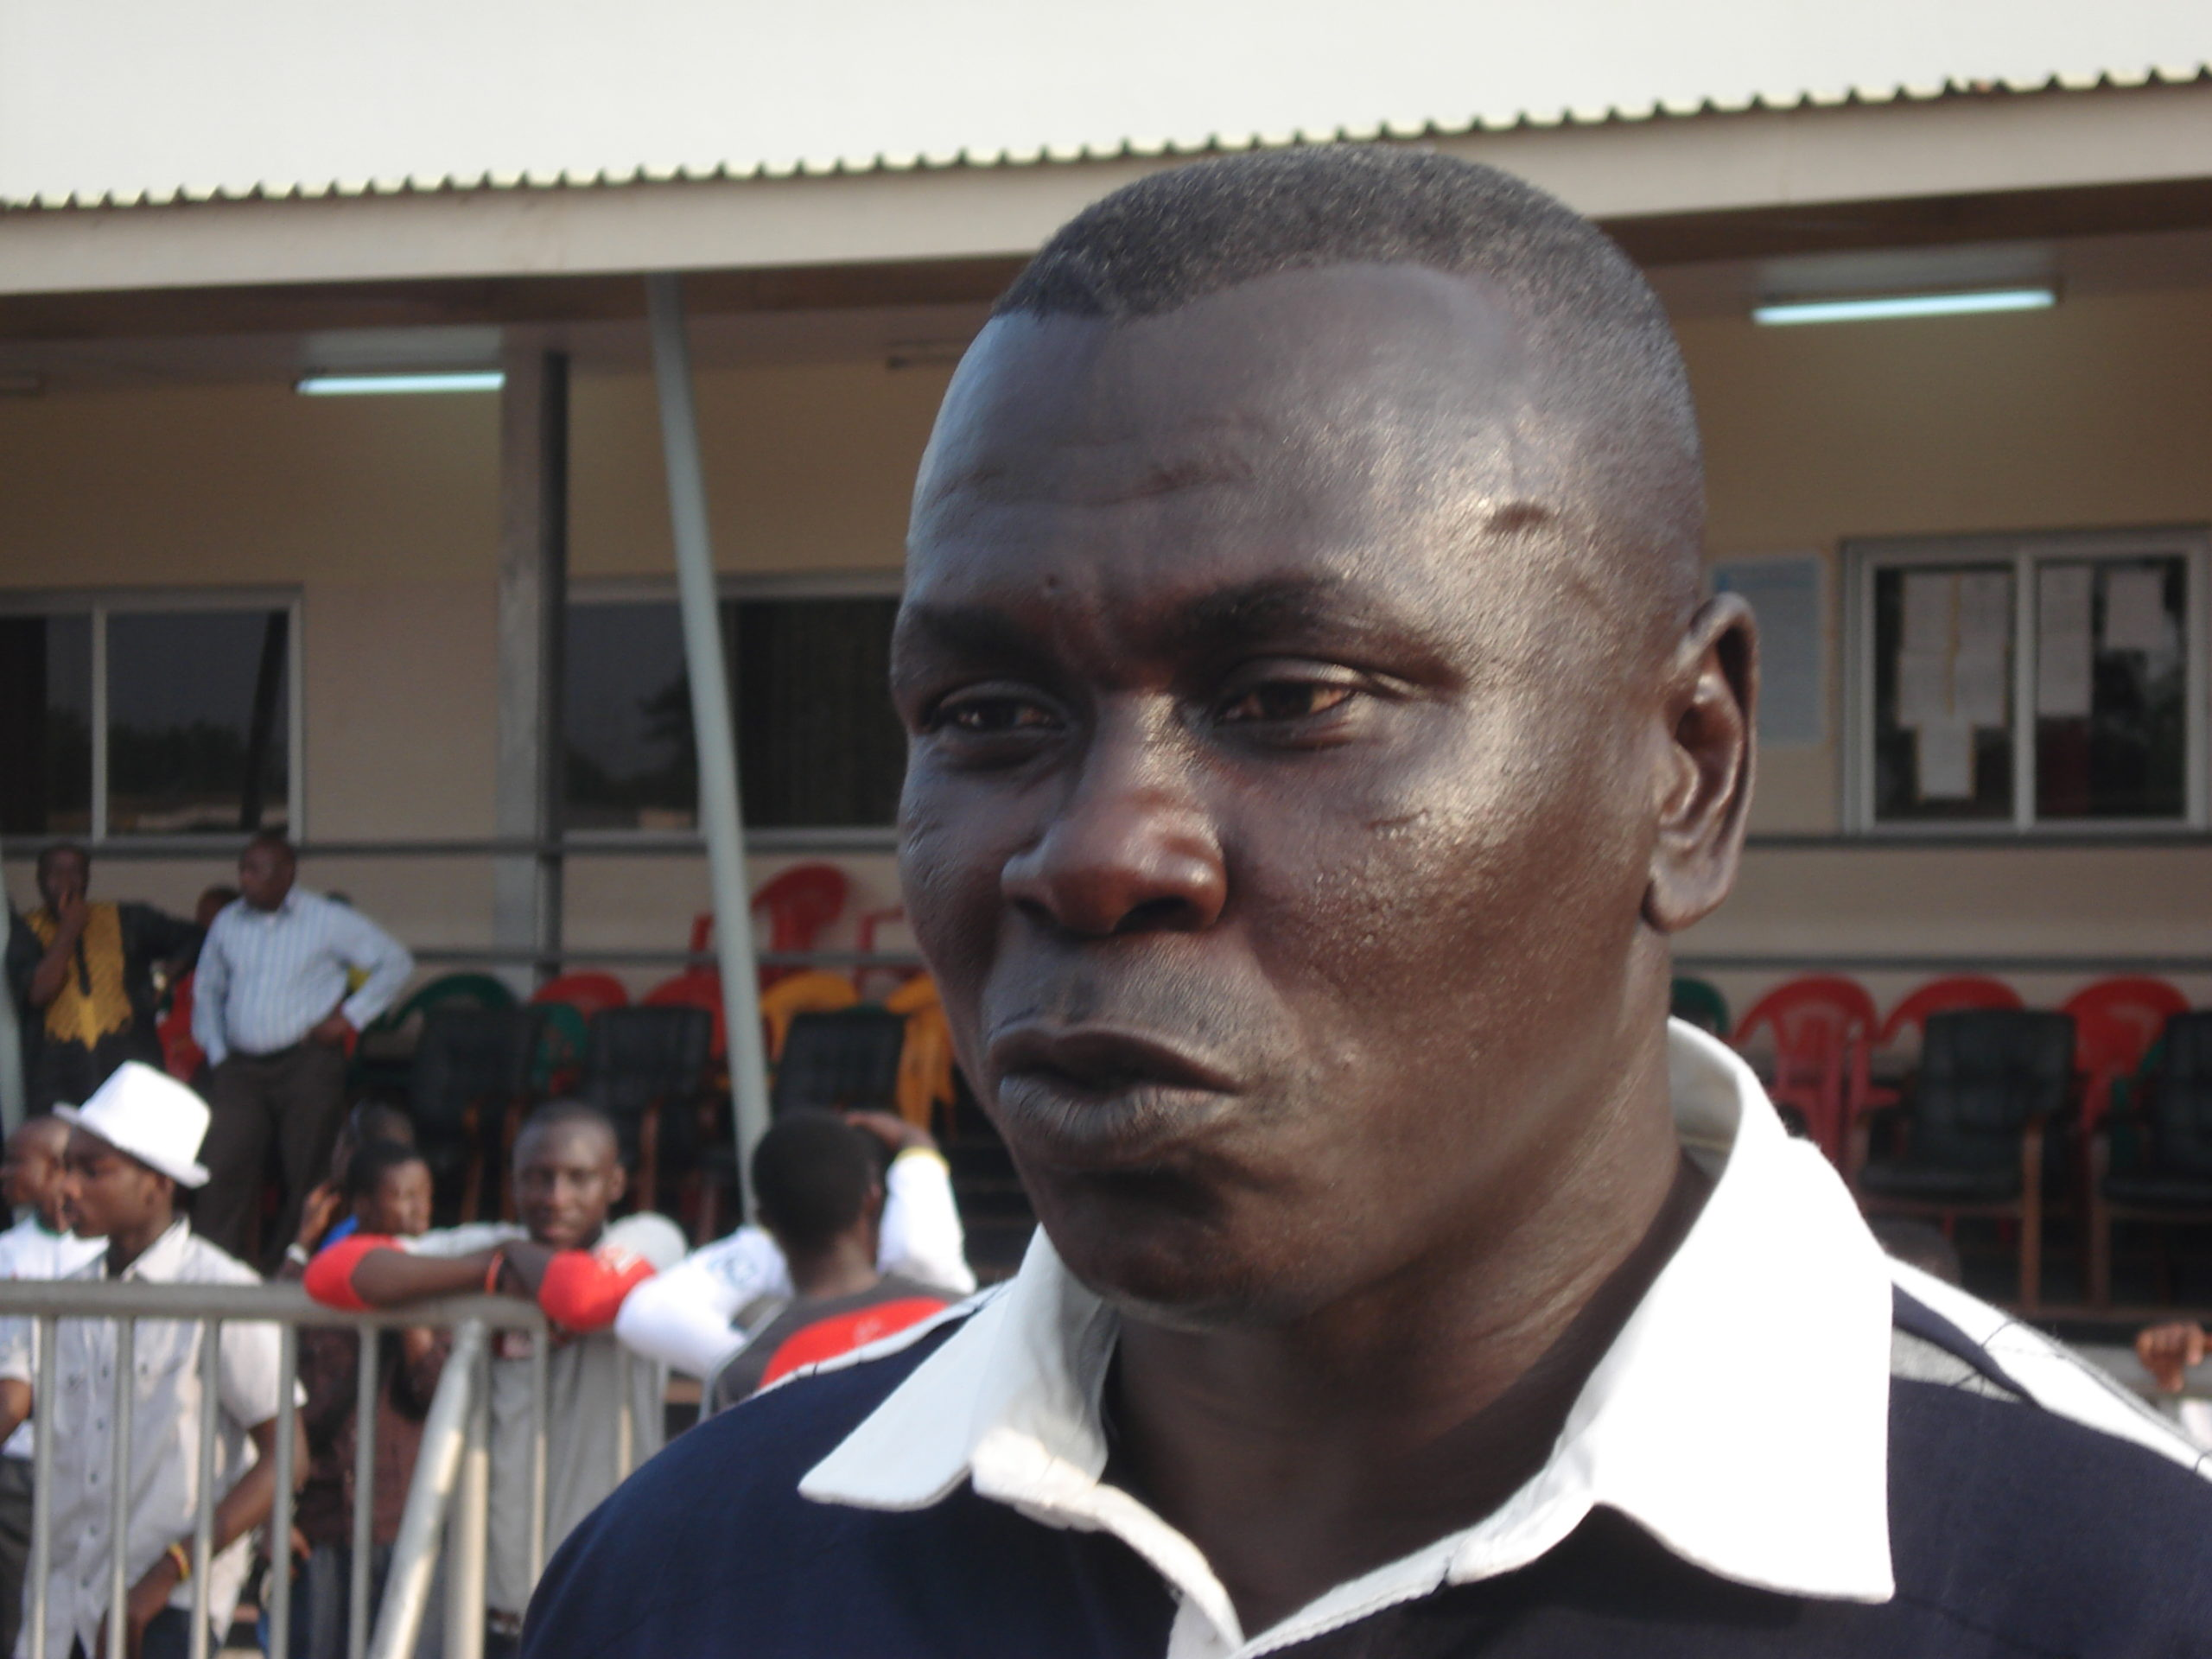 Frimpong Manso fears problems in Kotoko will deter others from managing the team